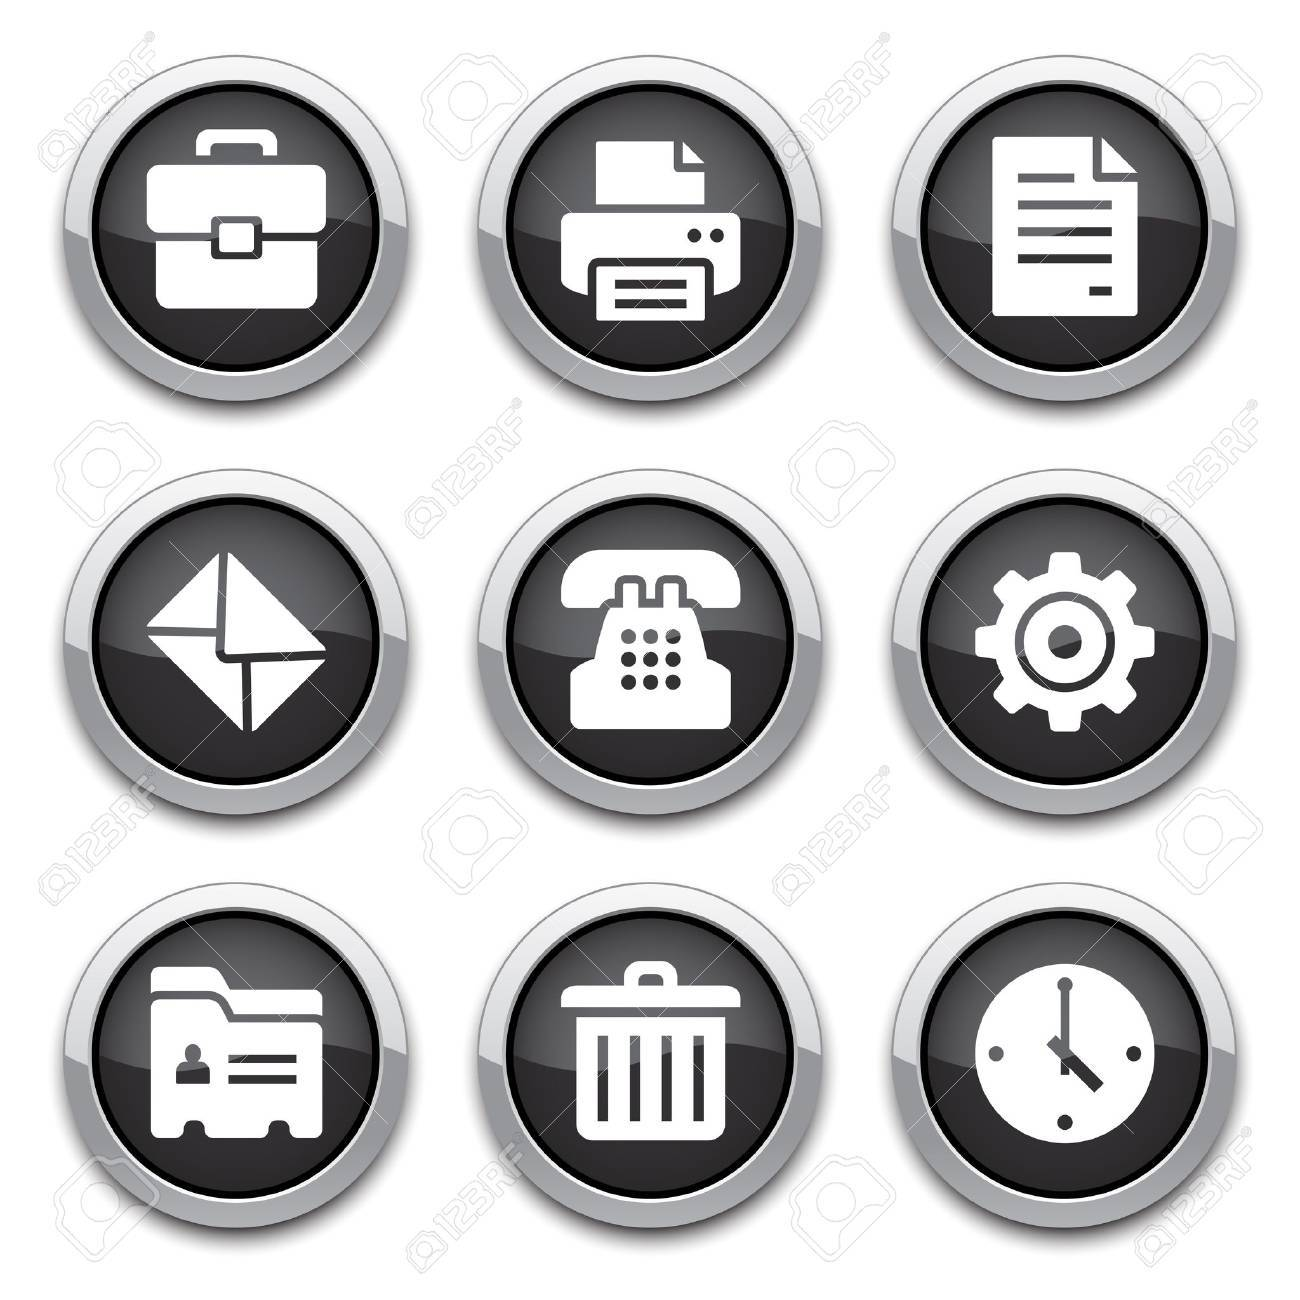 black office buttons Stock Vector - 14898158